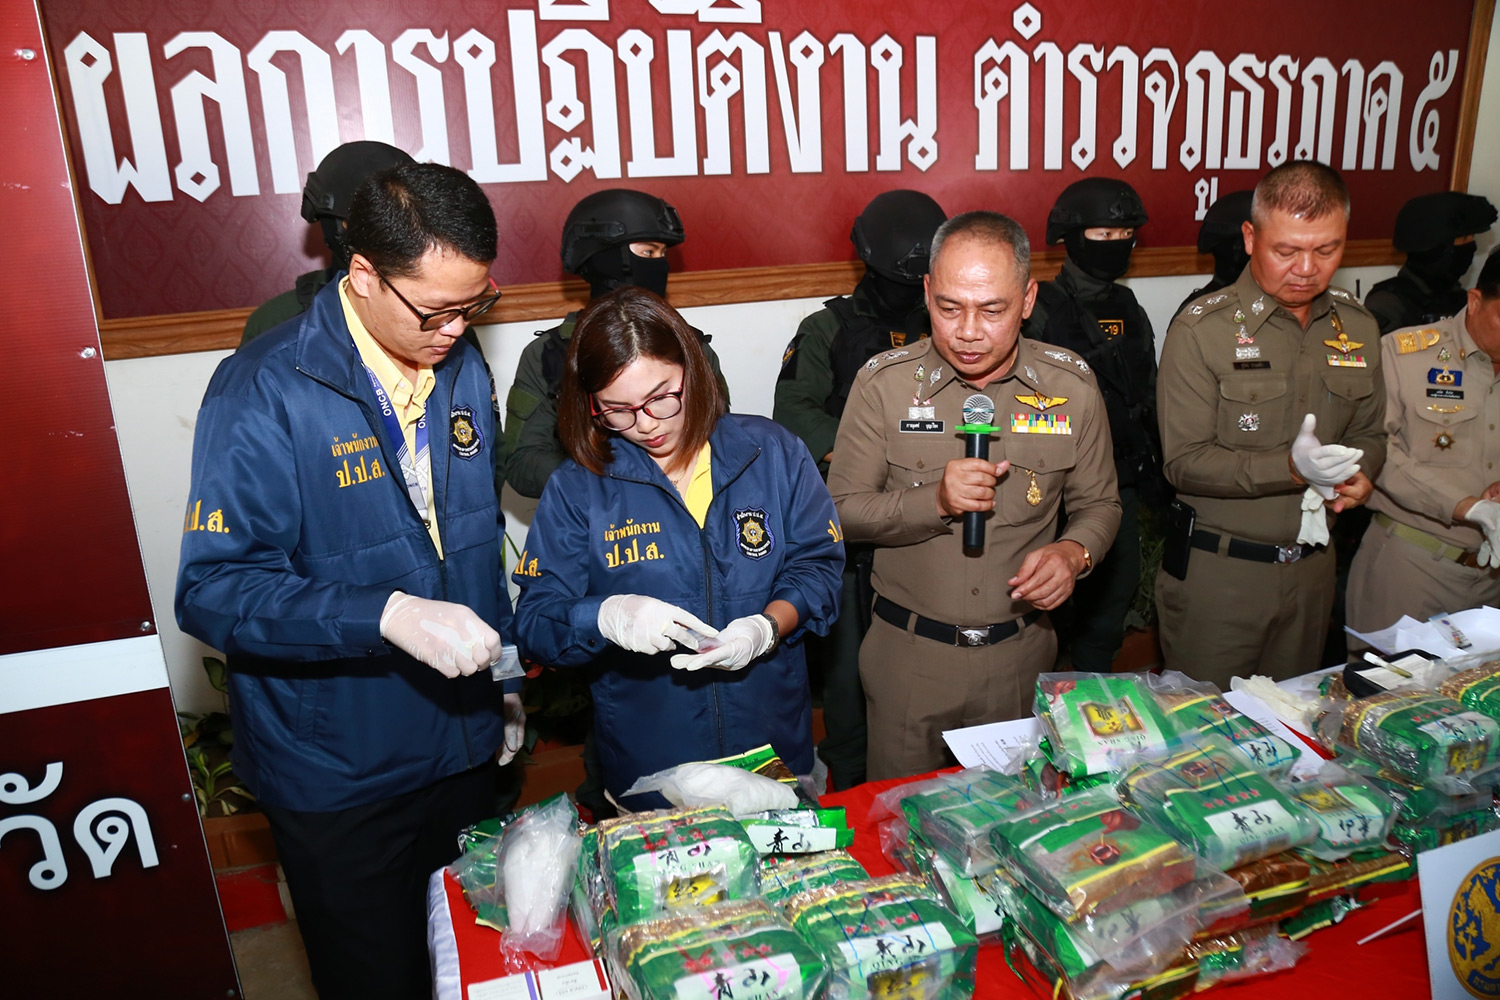 Packs of crystal methamphetamine, weighing 105.9kg in total, are displayed during a media briefing at the Provincial Police Region 5 head office in Chiang Mai on Friday. (Photo by Cheewin Sattha)